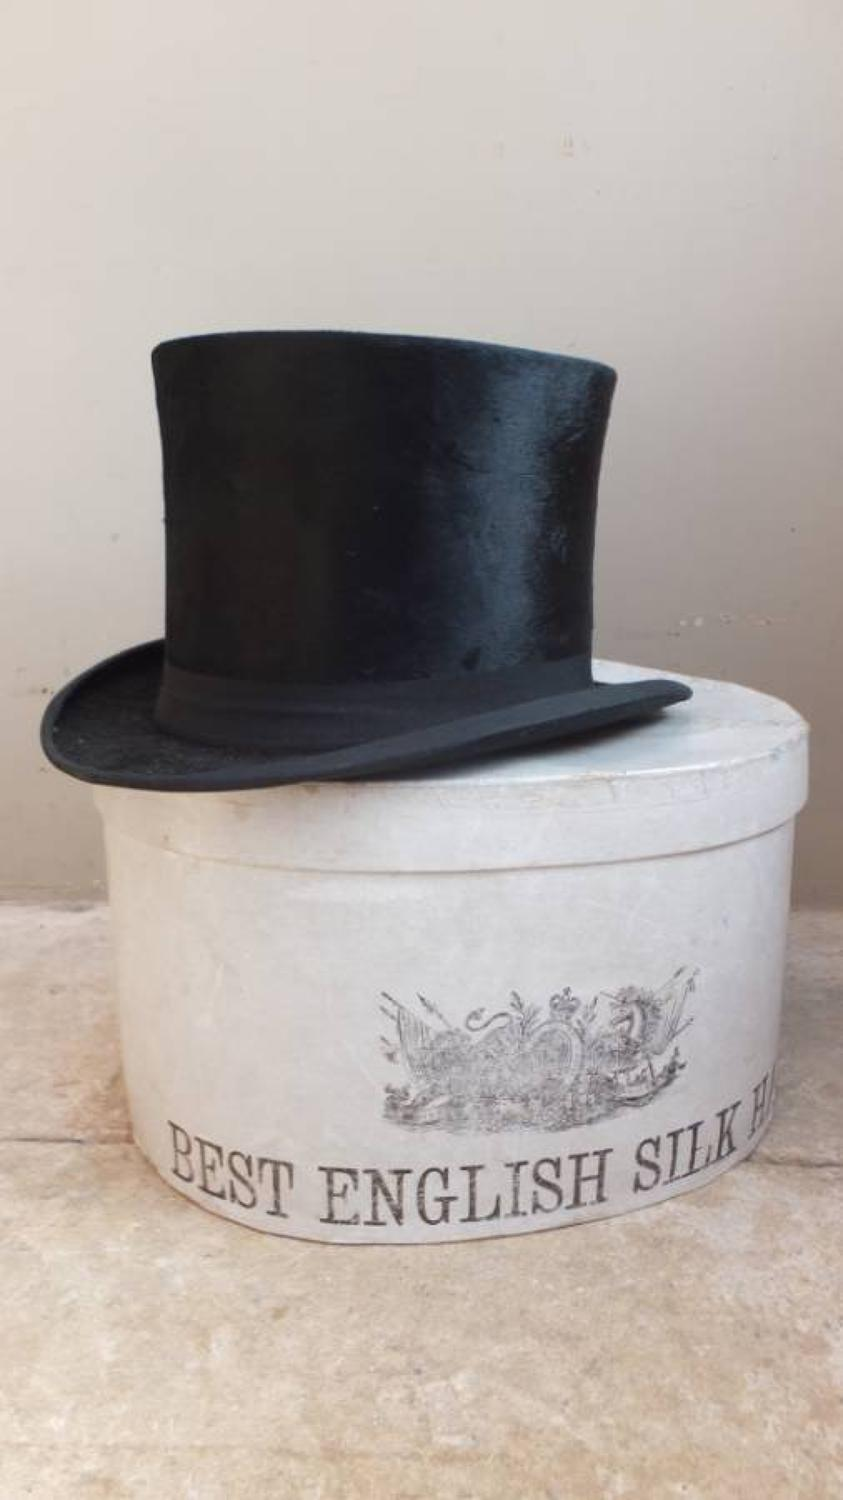 1920s Best English Silk Hat Box with Hat